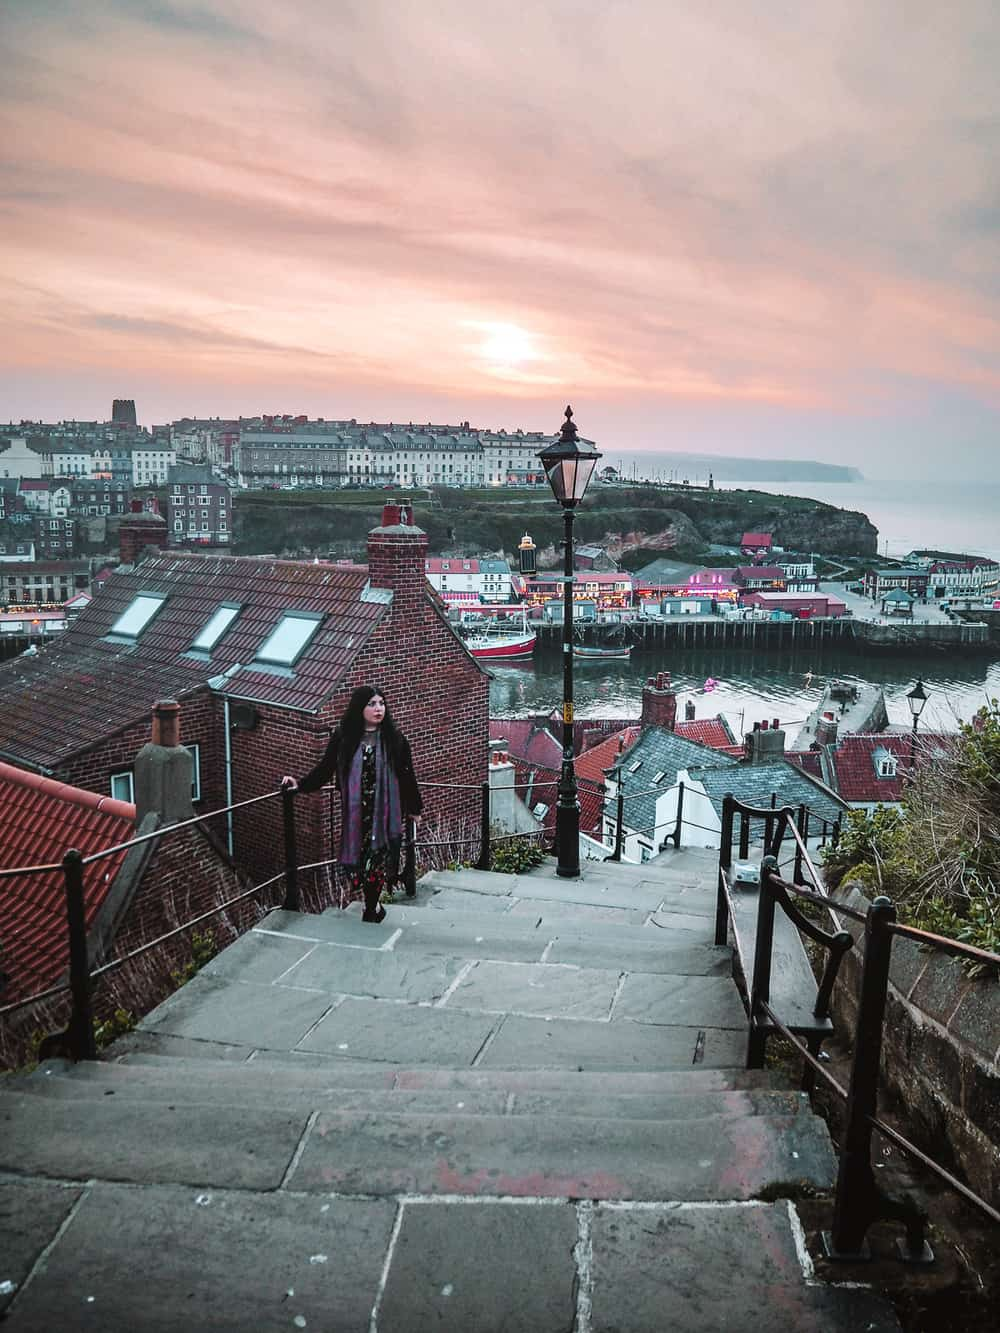 Dracula in Whitby 199 steps